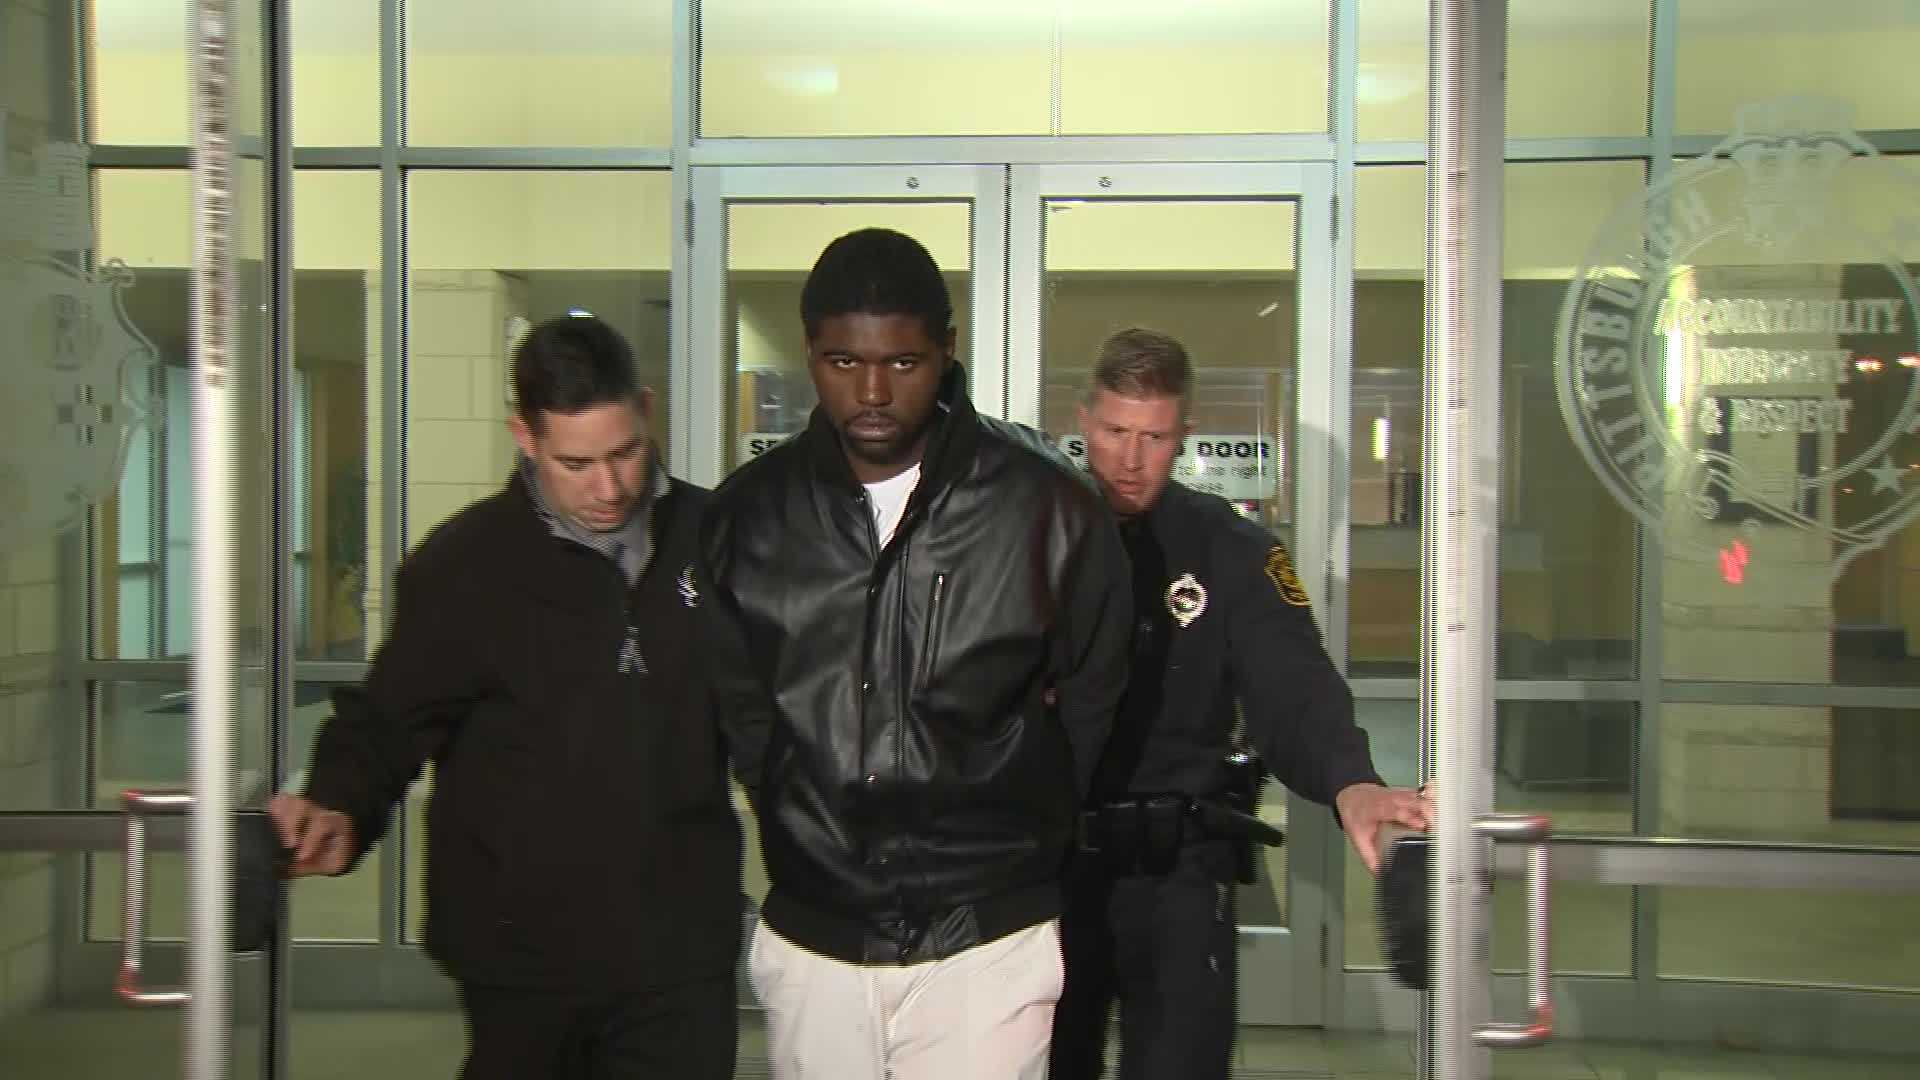 Markese Reese in handcuffs